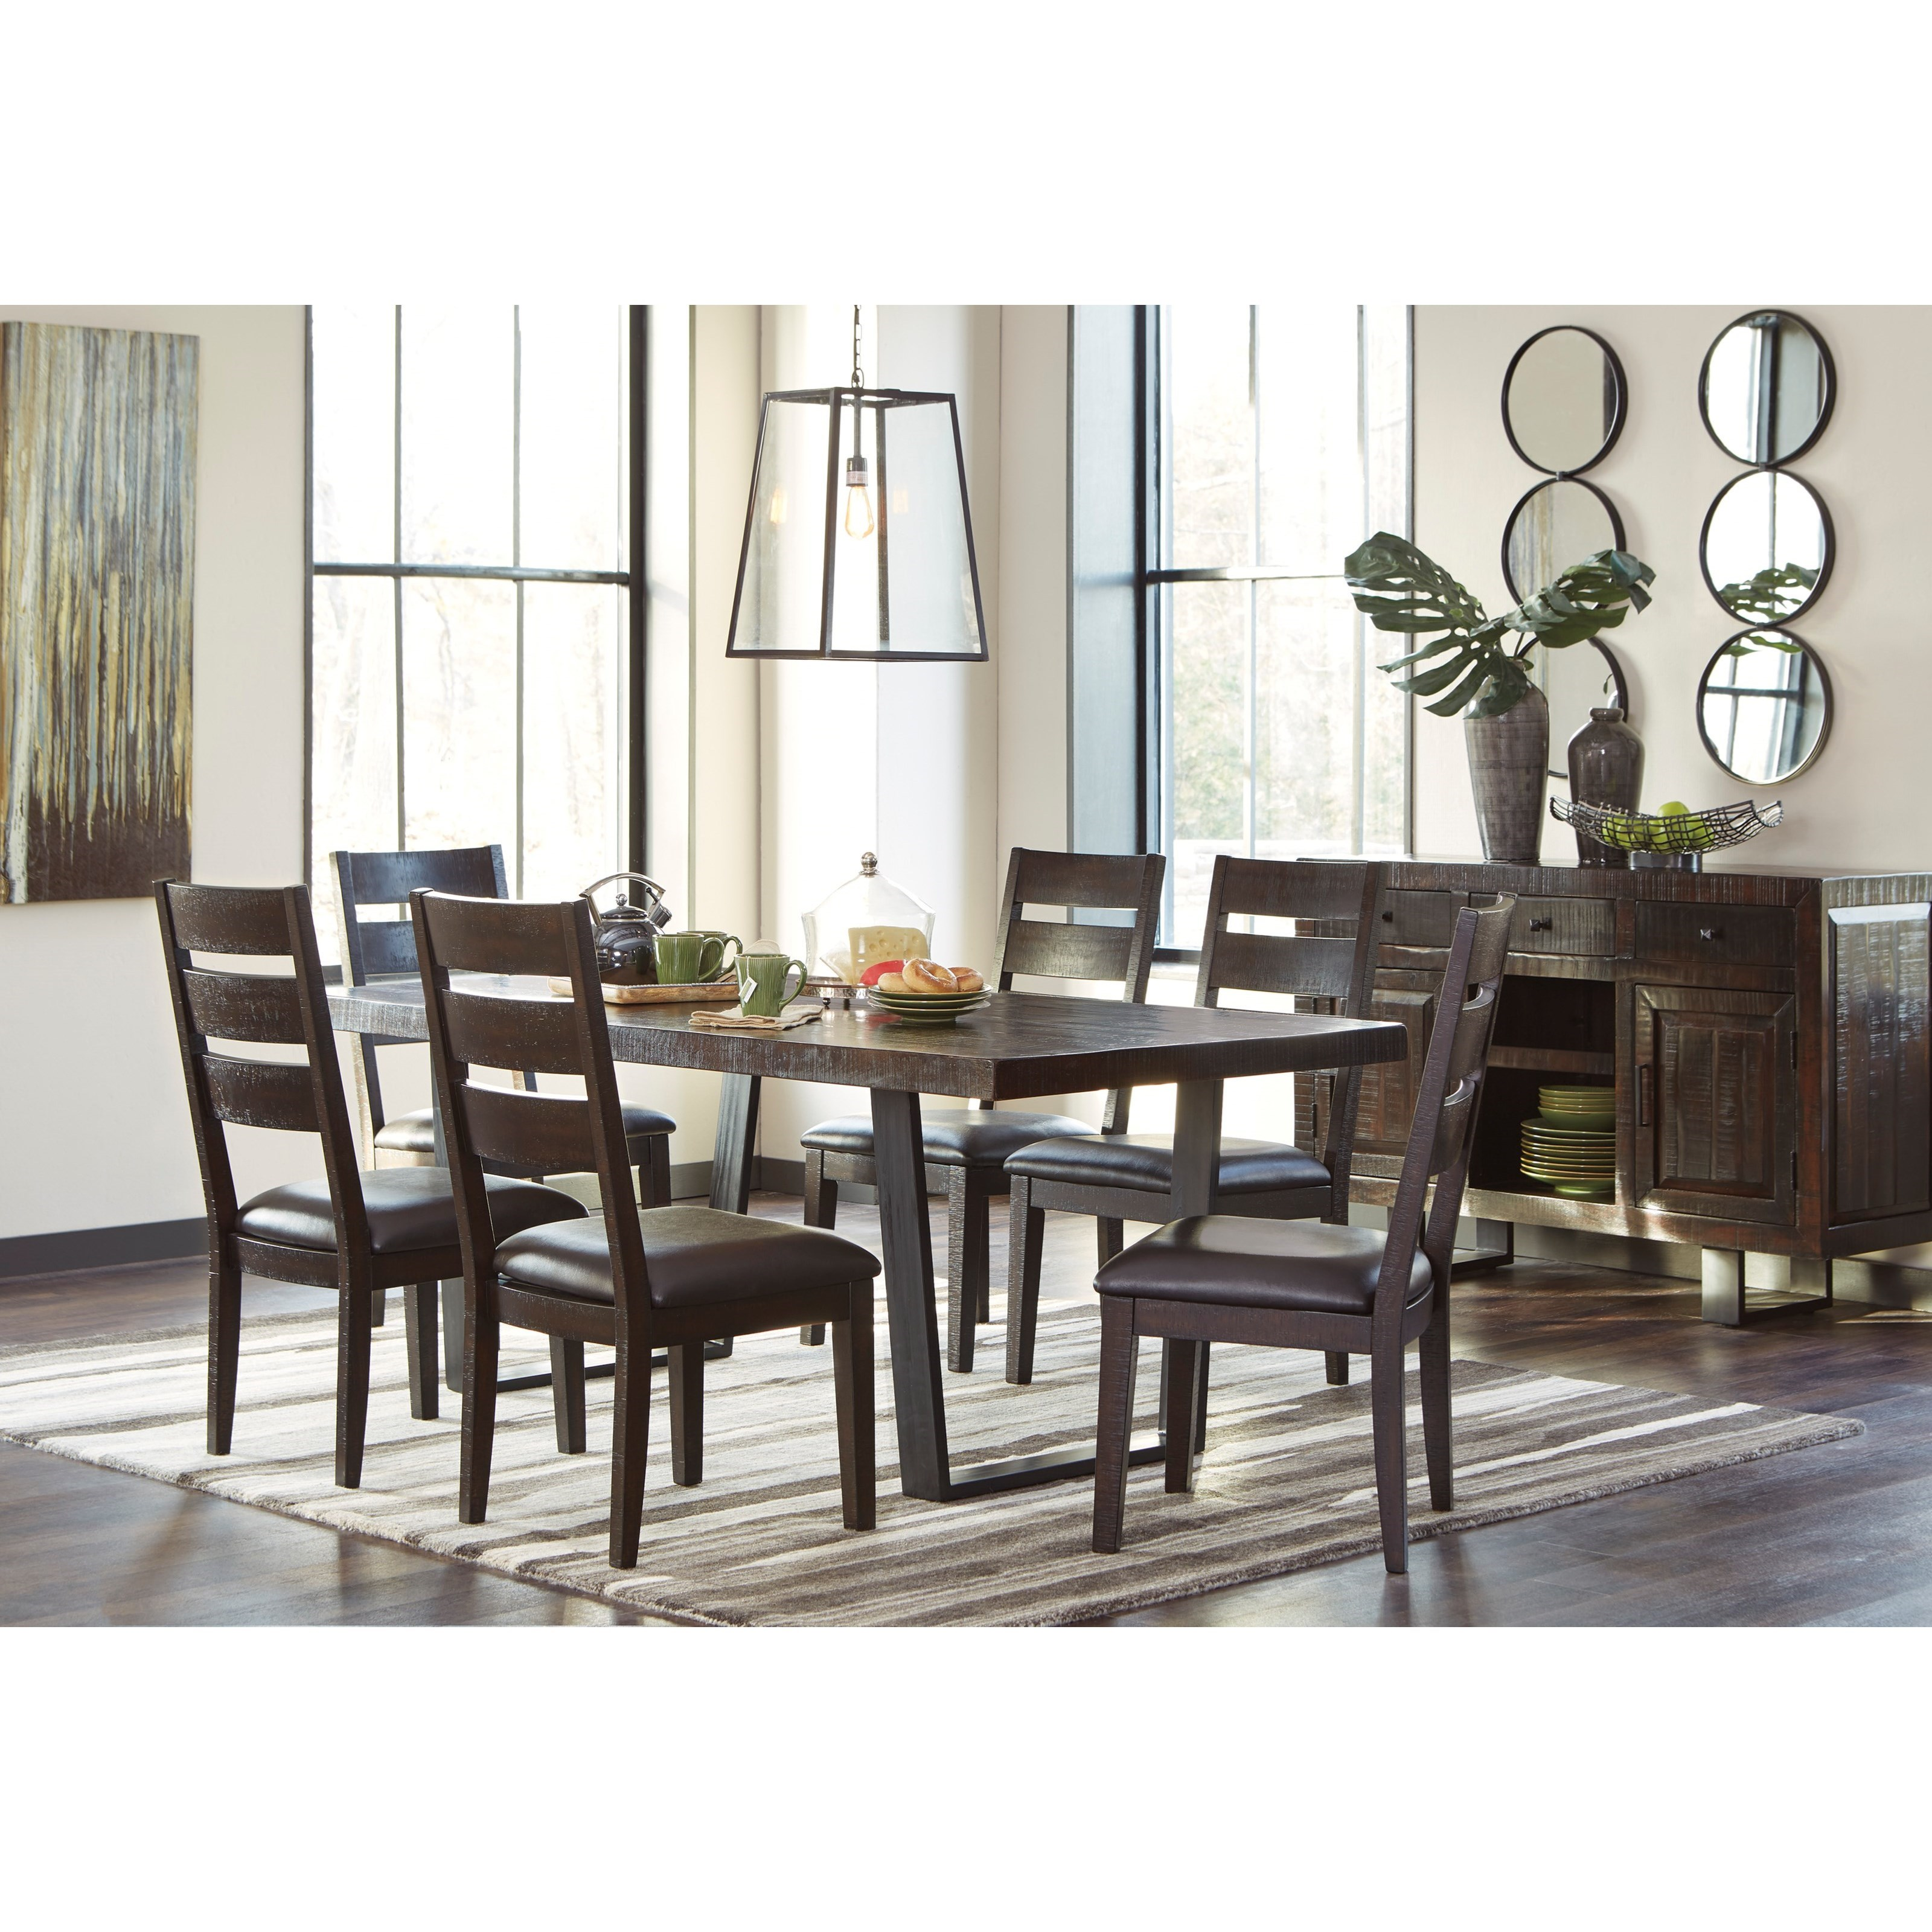 Signature design by ashley parlone casual dining room for Casual dining room